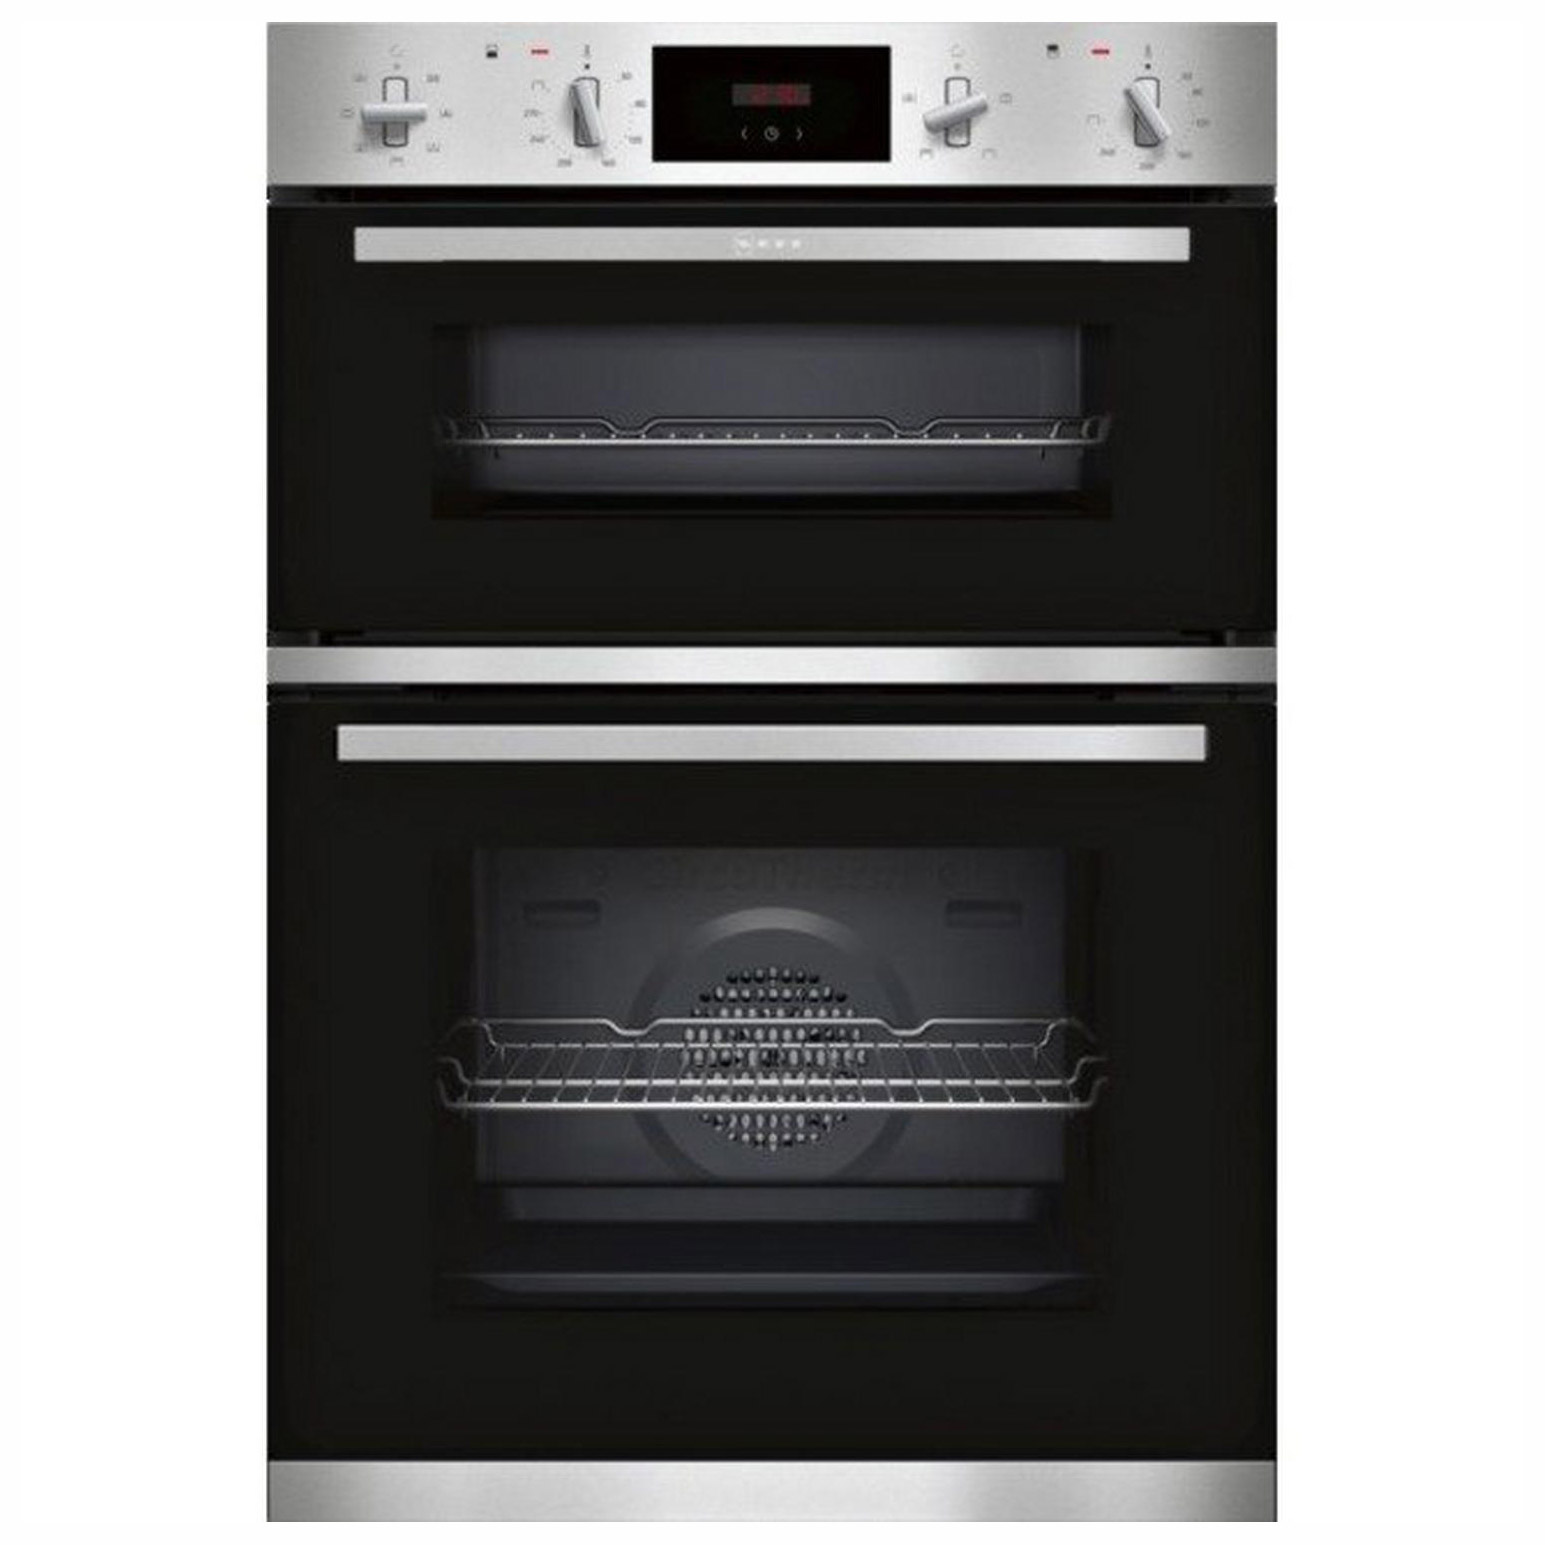 Neff U1gcc0an0b 60cm Built In Electric Double Oven In